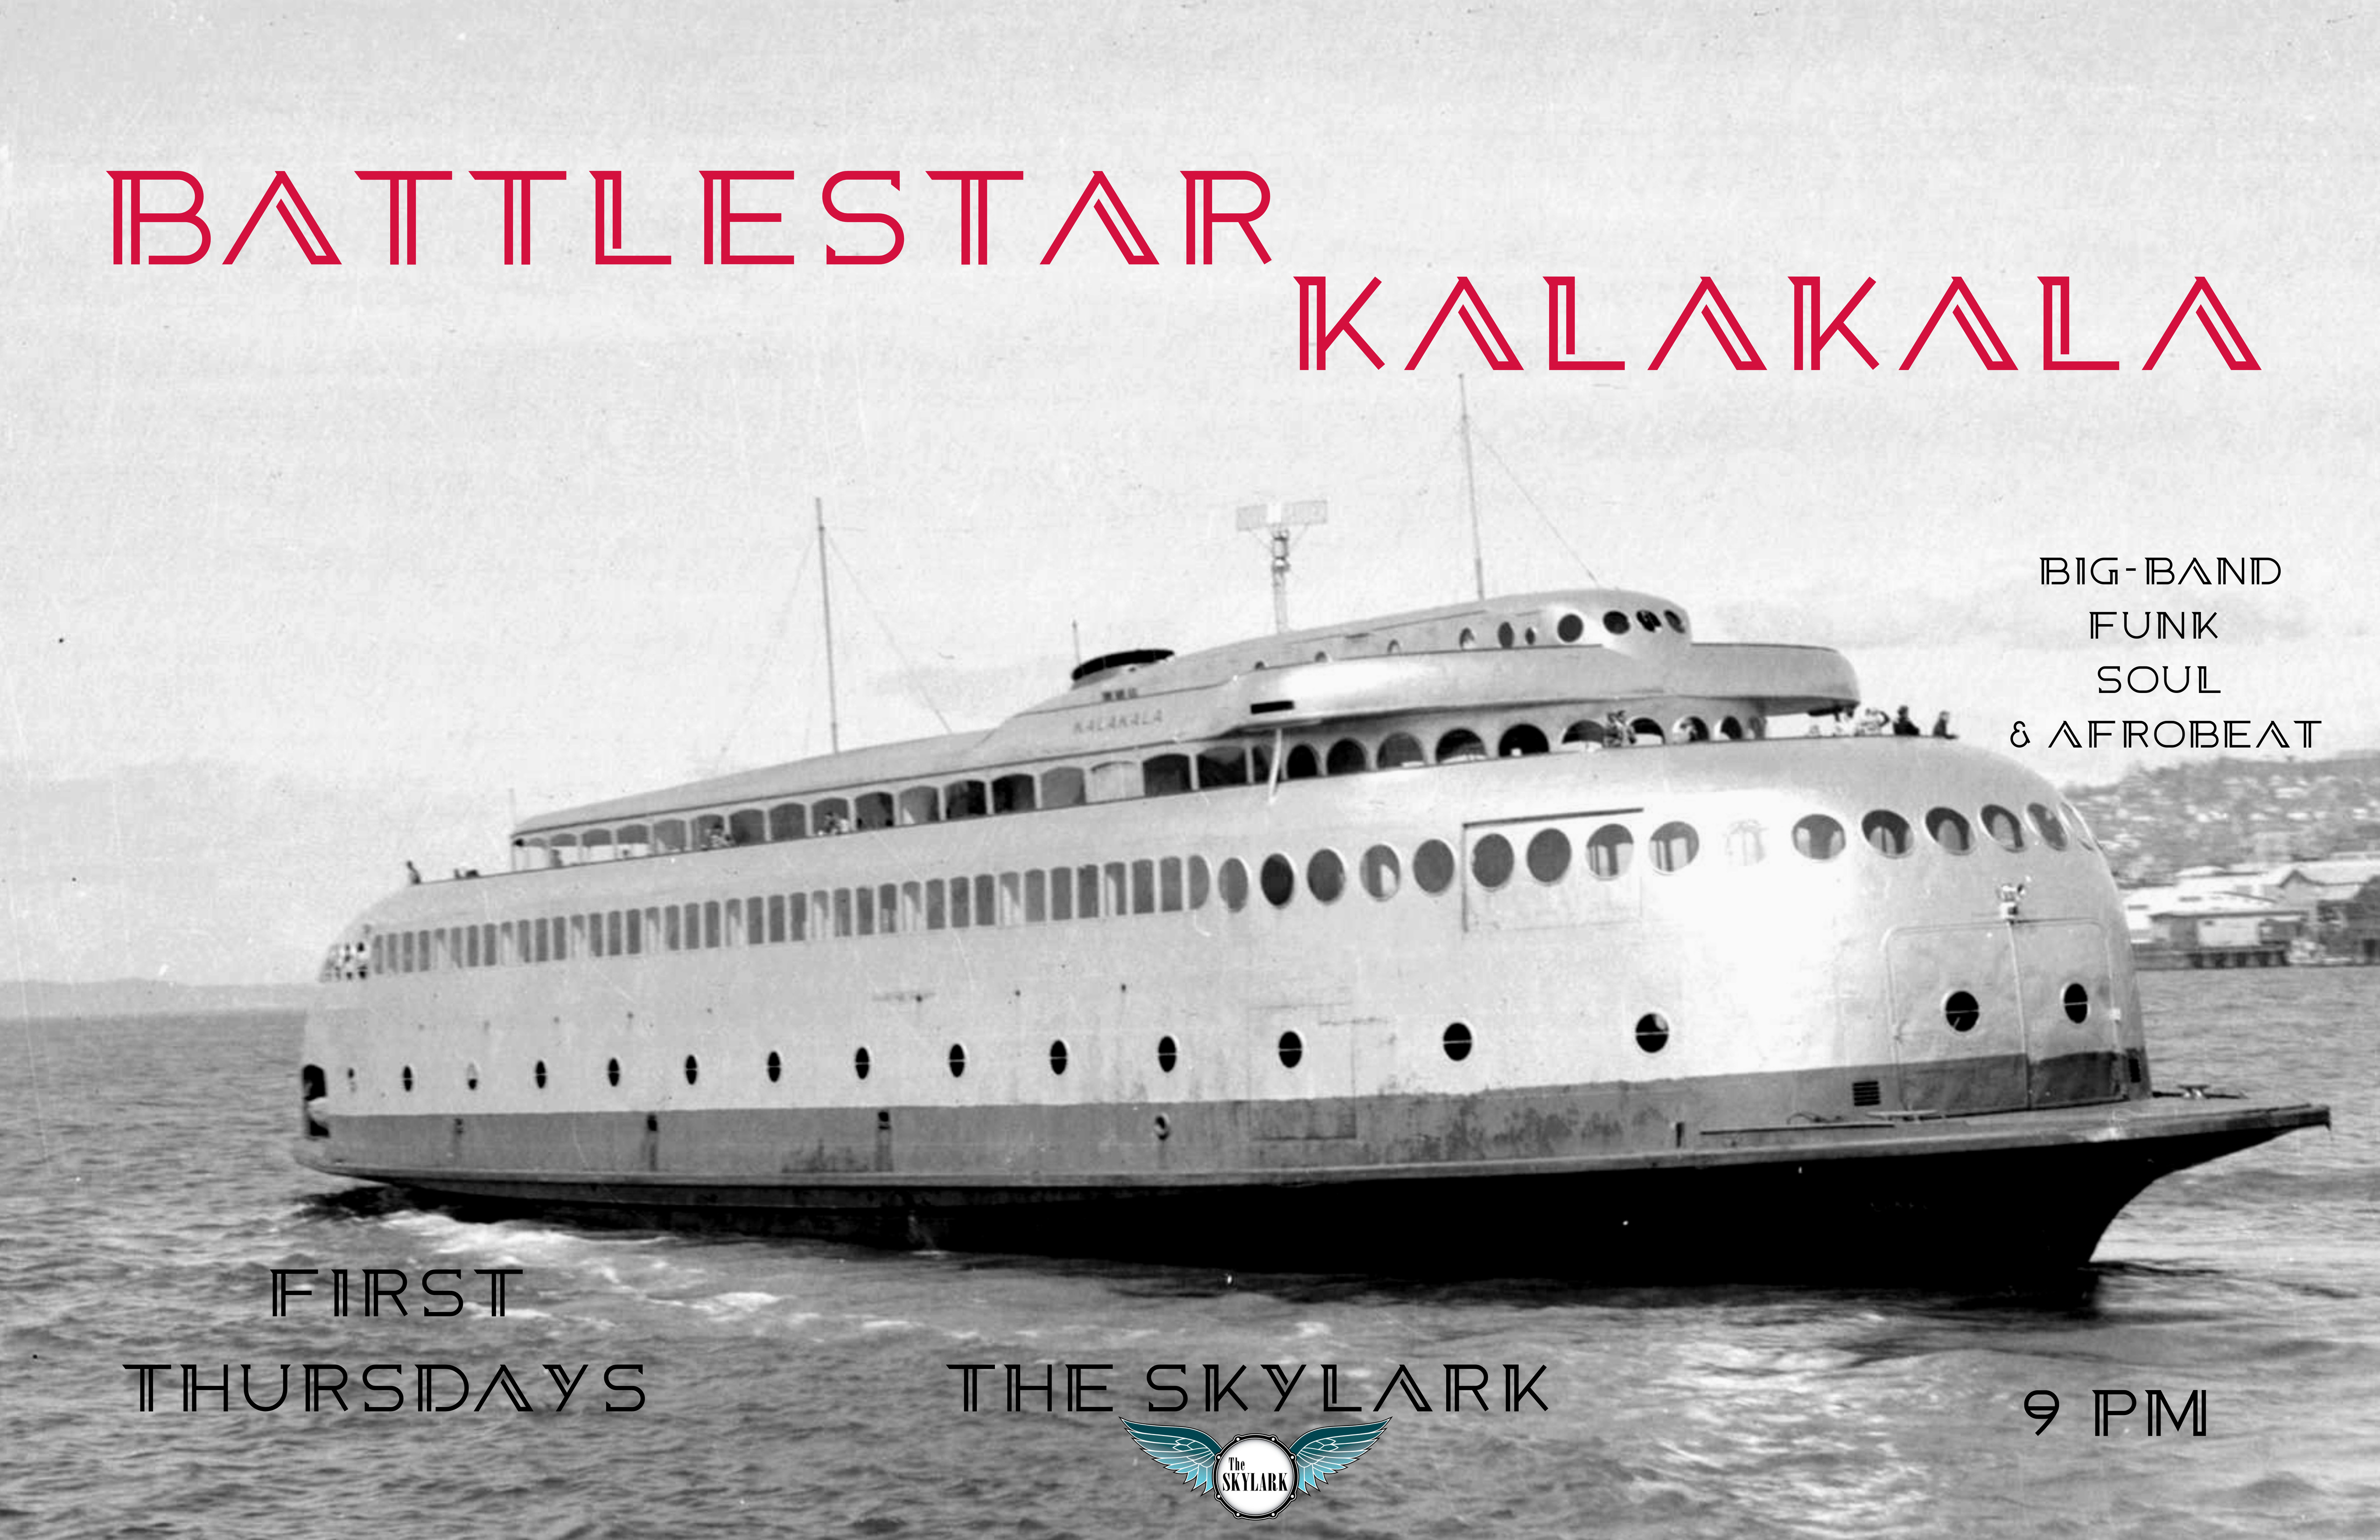 BATTLESTAR KALAKALA continues the tradition of #RareFunkGrooves and #DeepFunk on West Seattle Island. Featuring members of West Seattle Soul and special guests! 10/7 is First Thursday FUNK with Battlestar Kalakala No.3 and we can't wait to share it with YOU! Excited to have Chris O'Connor and Jimmy Austin back in the fold, and to welcome Chris Poage and Alex Dugdale for the night!! See you at Skylark West Seattle, and as before, vaxxed and masked, with space to hang outside in the back.